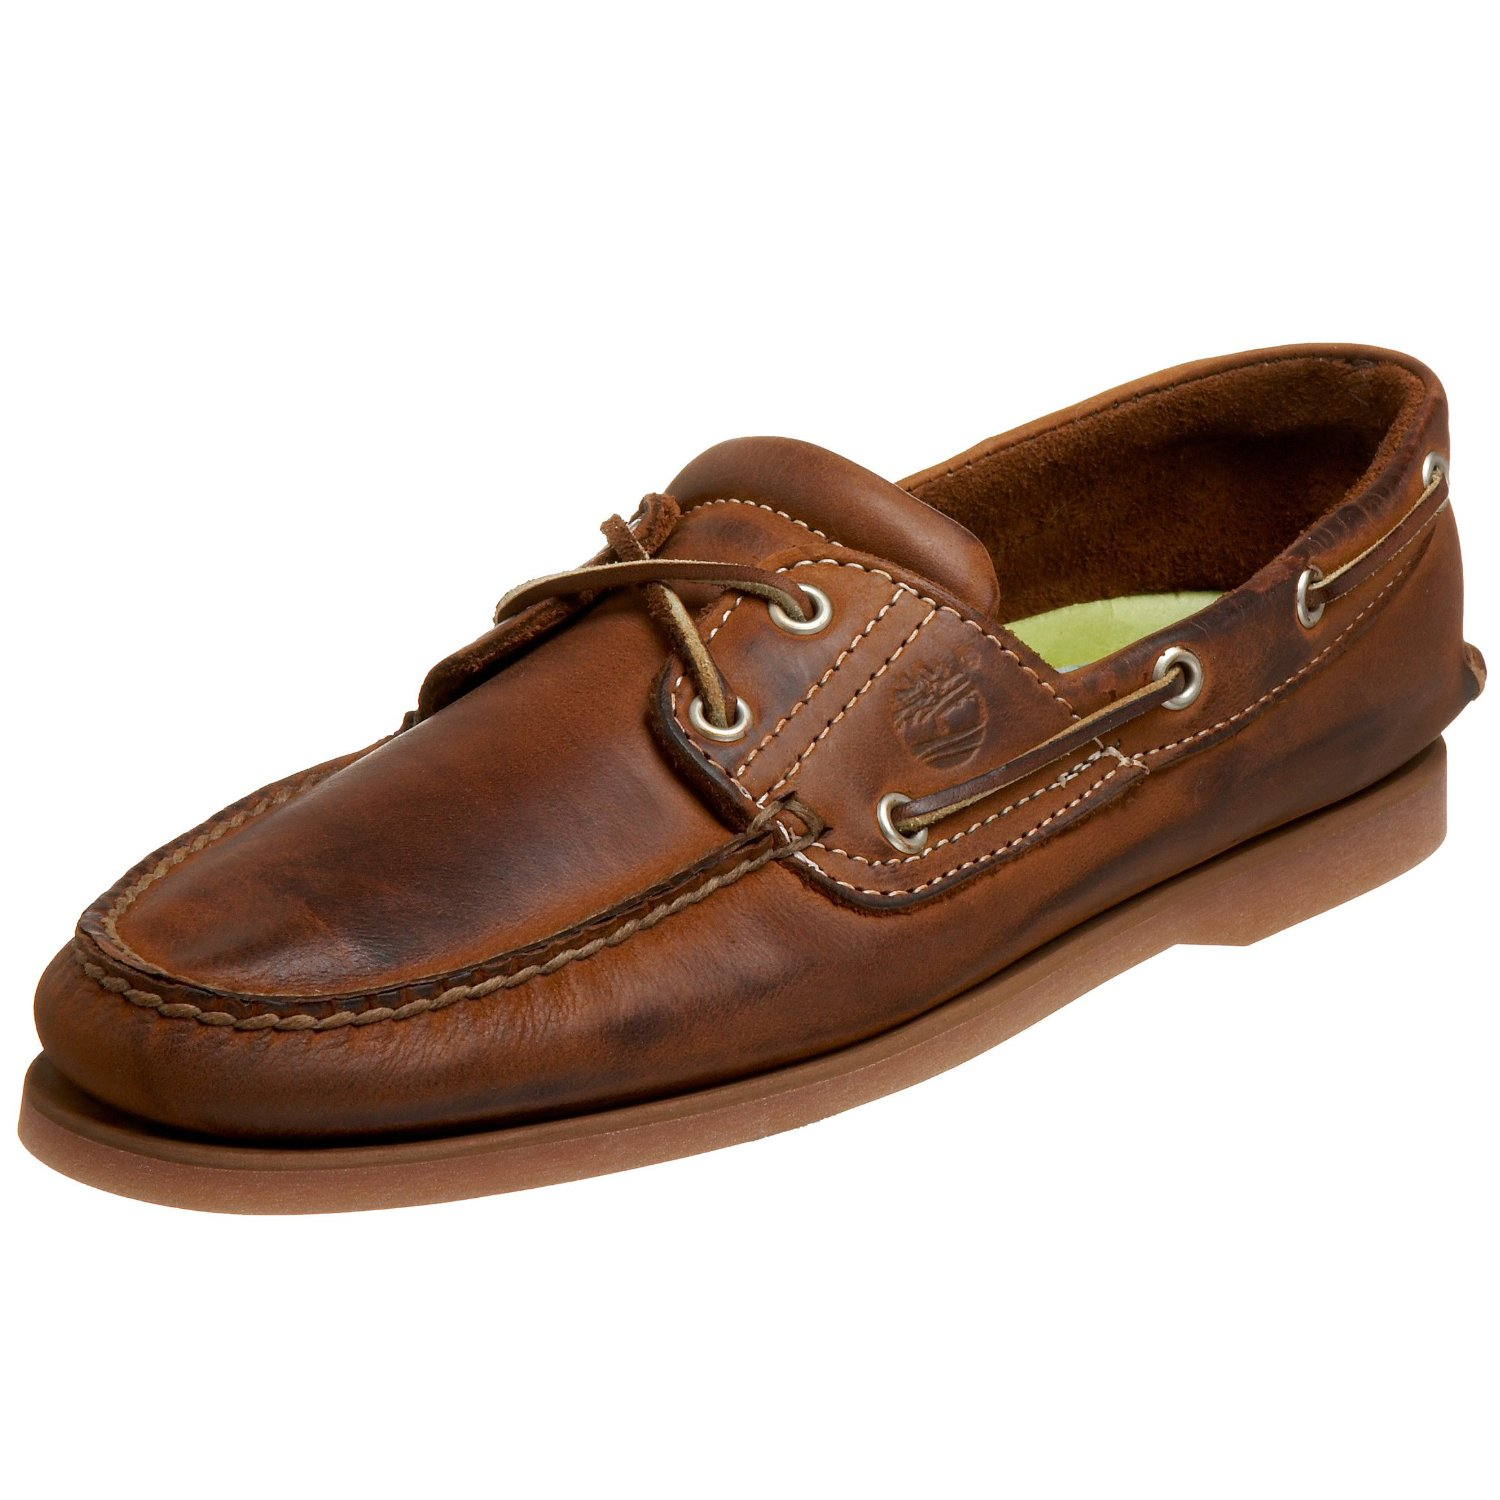 Donald Pliner offers a full collection of mens designer shoes crafted with distinctive leathers and materials and unique embellishments to enhance your style all season long.